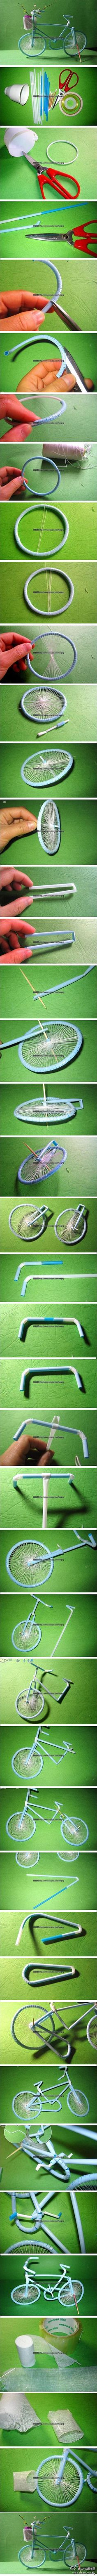 Bicycle tutorial - amazing idea